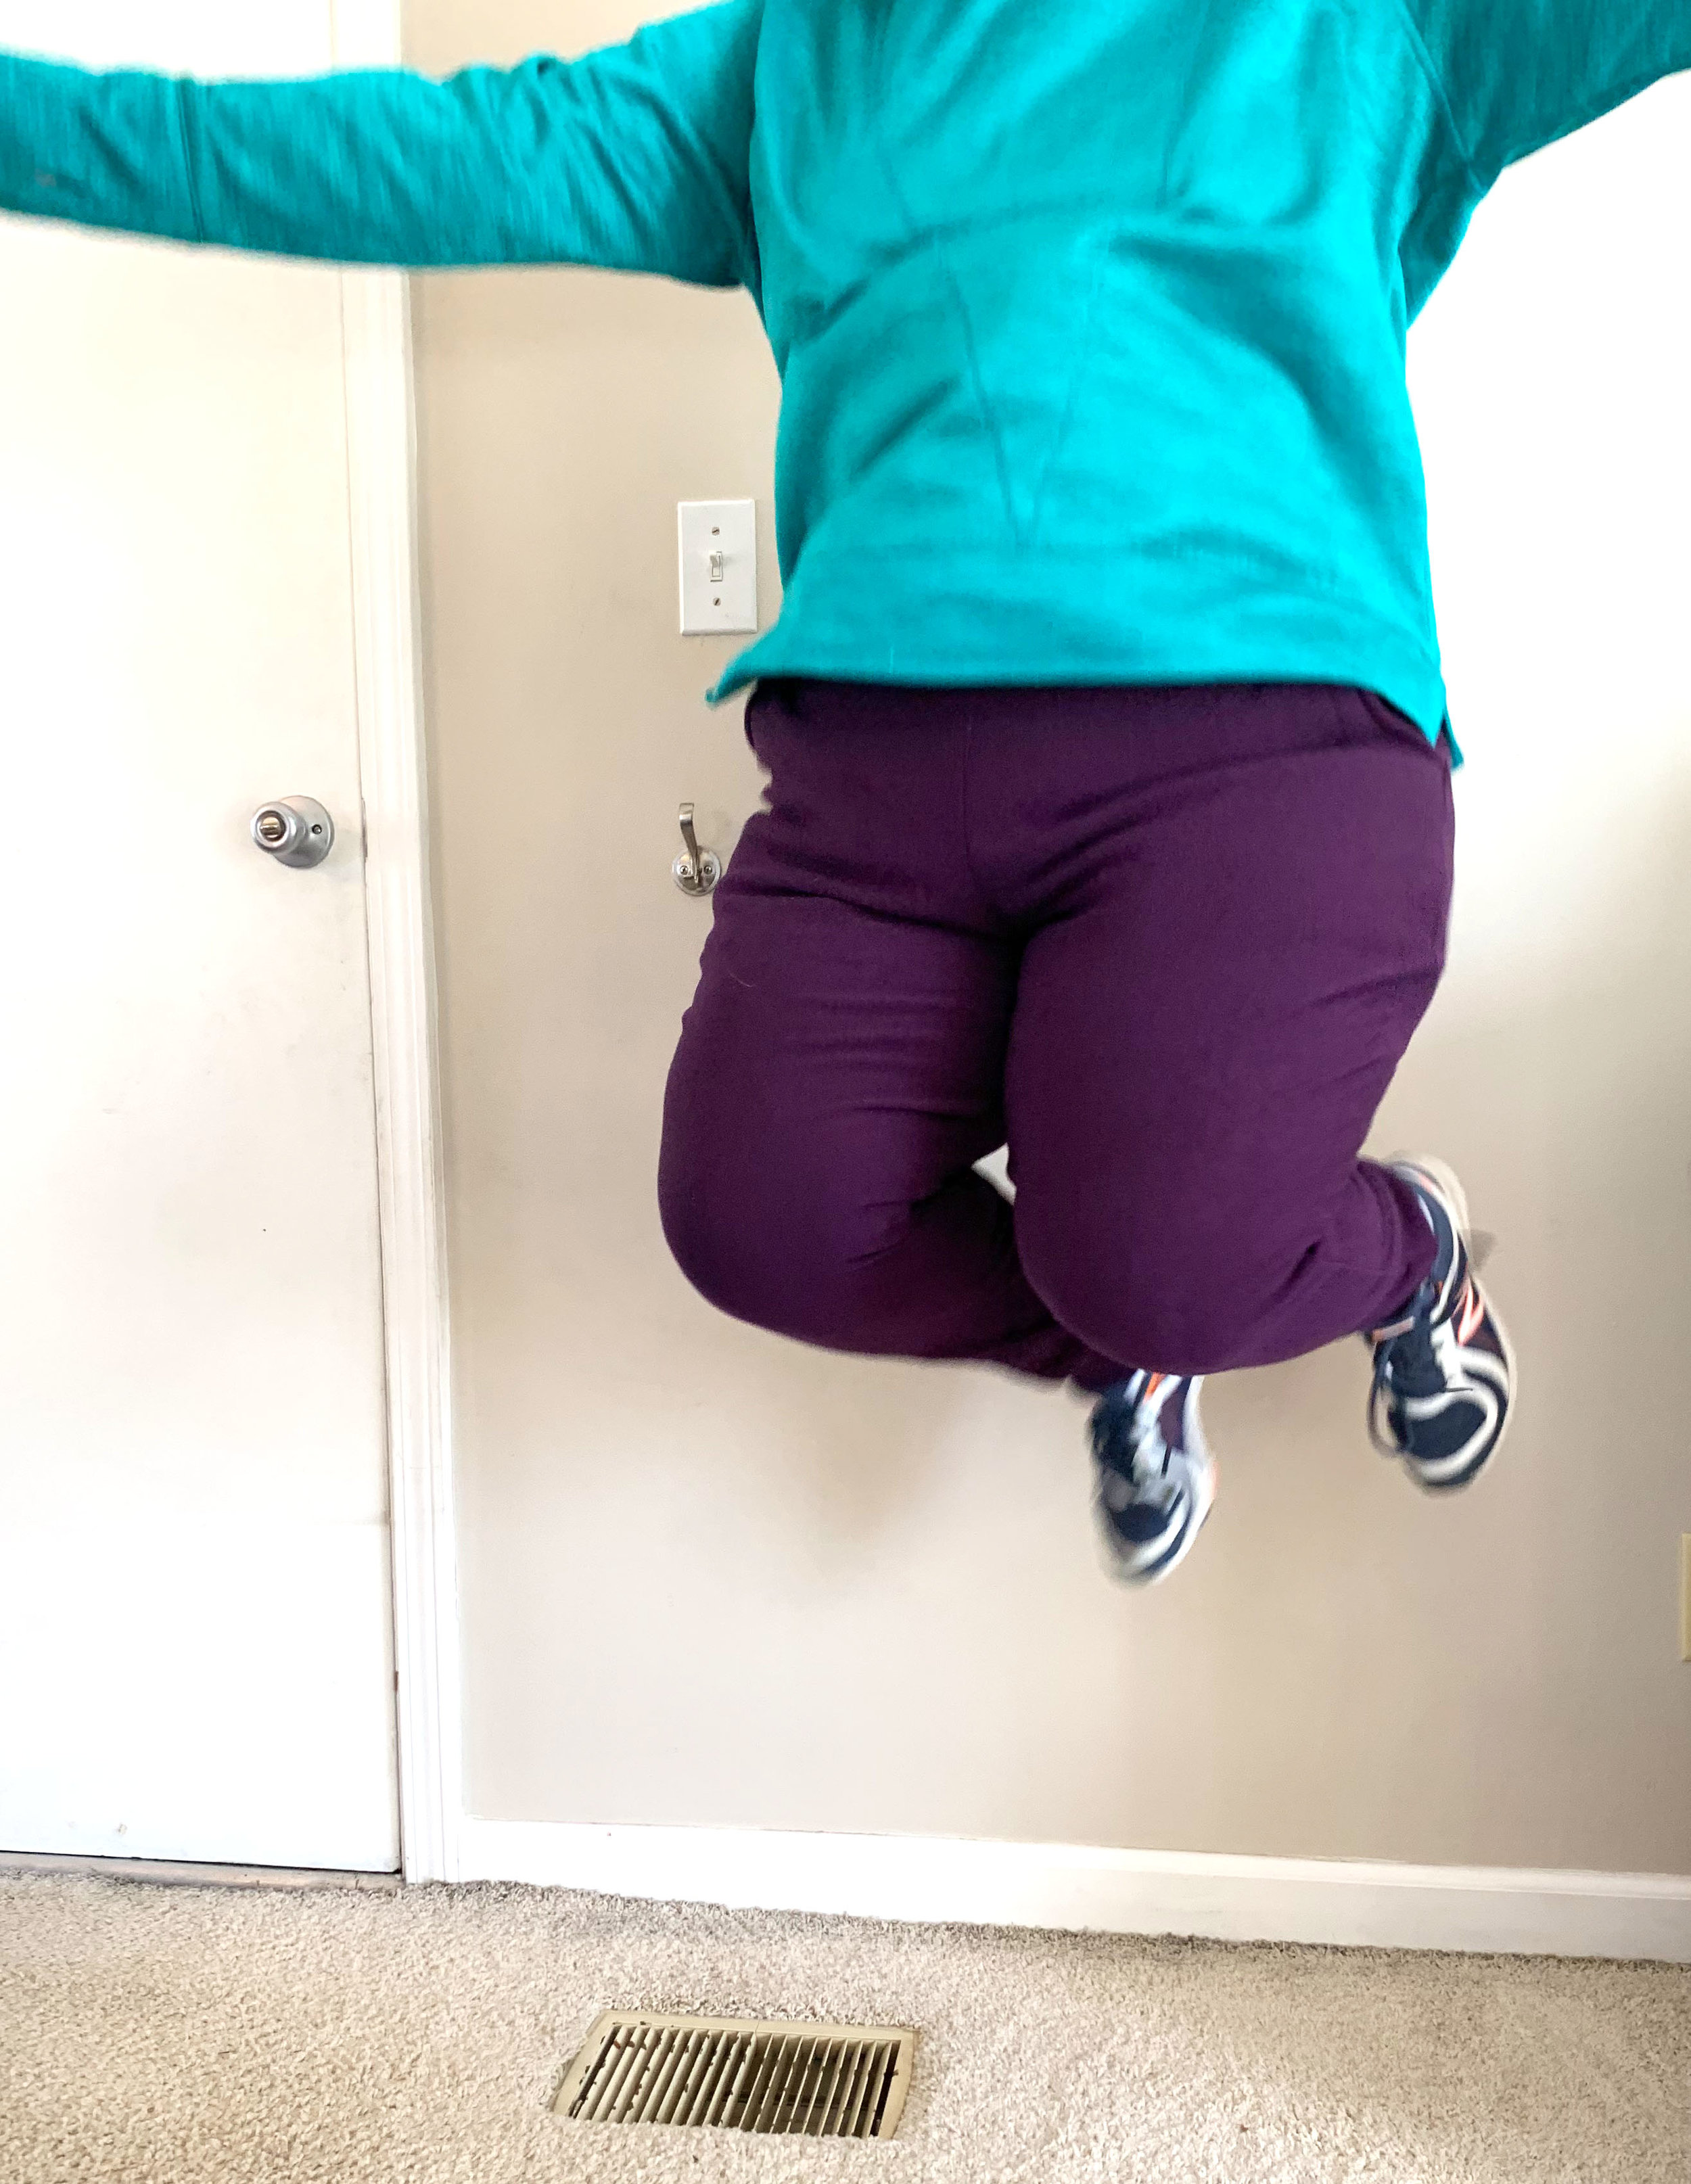 Should you be worried about being able to jump in these pants, have no fear. They are tested and approved for jumping!